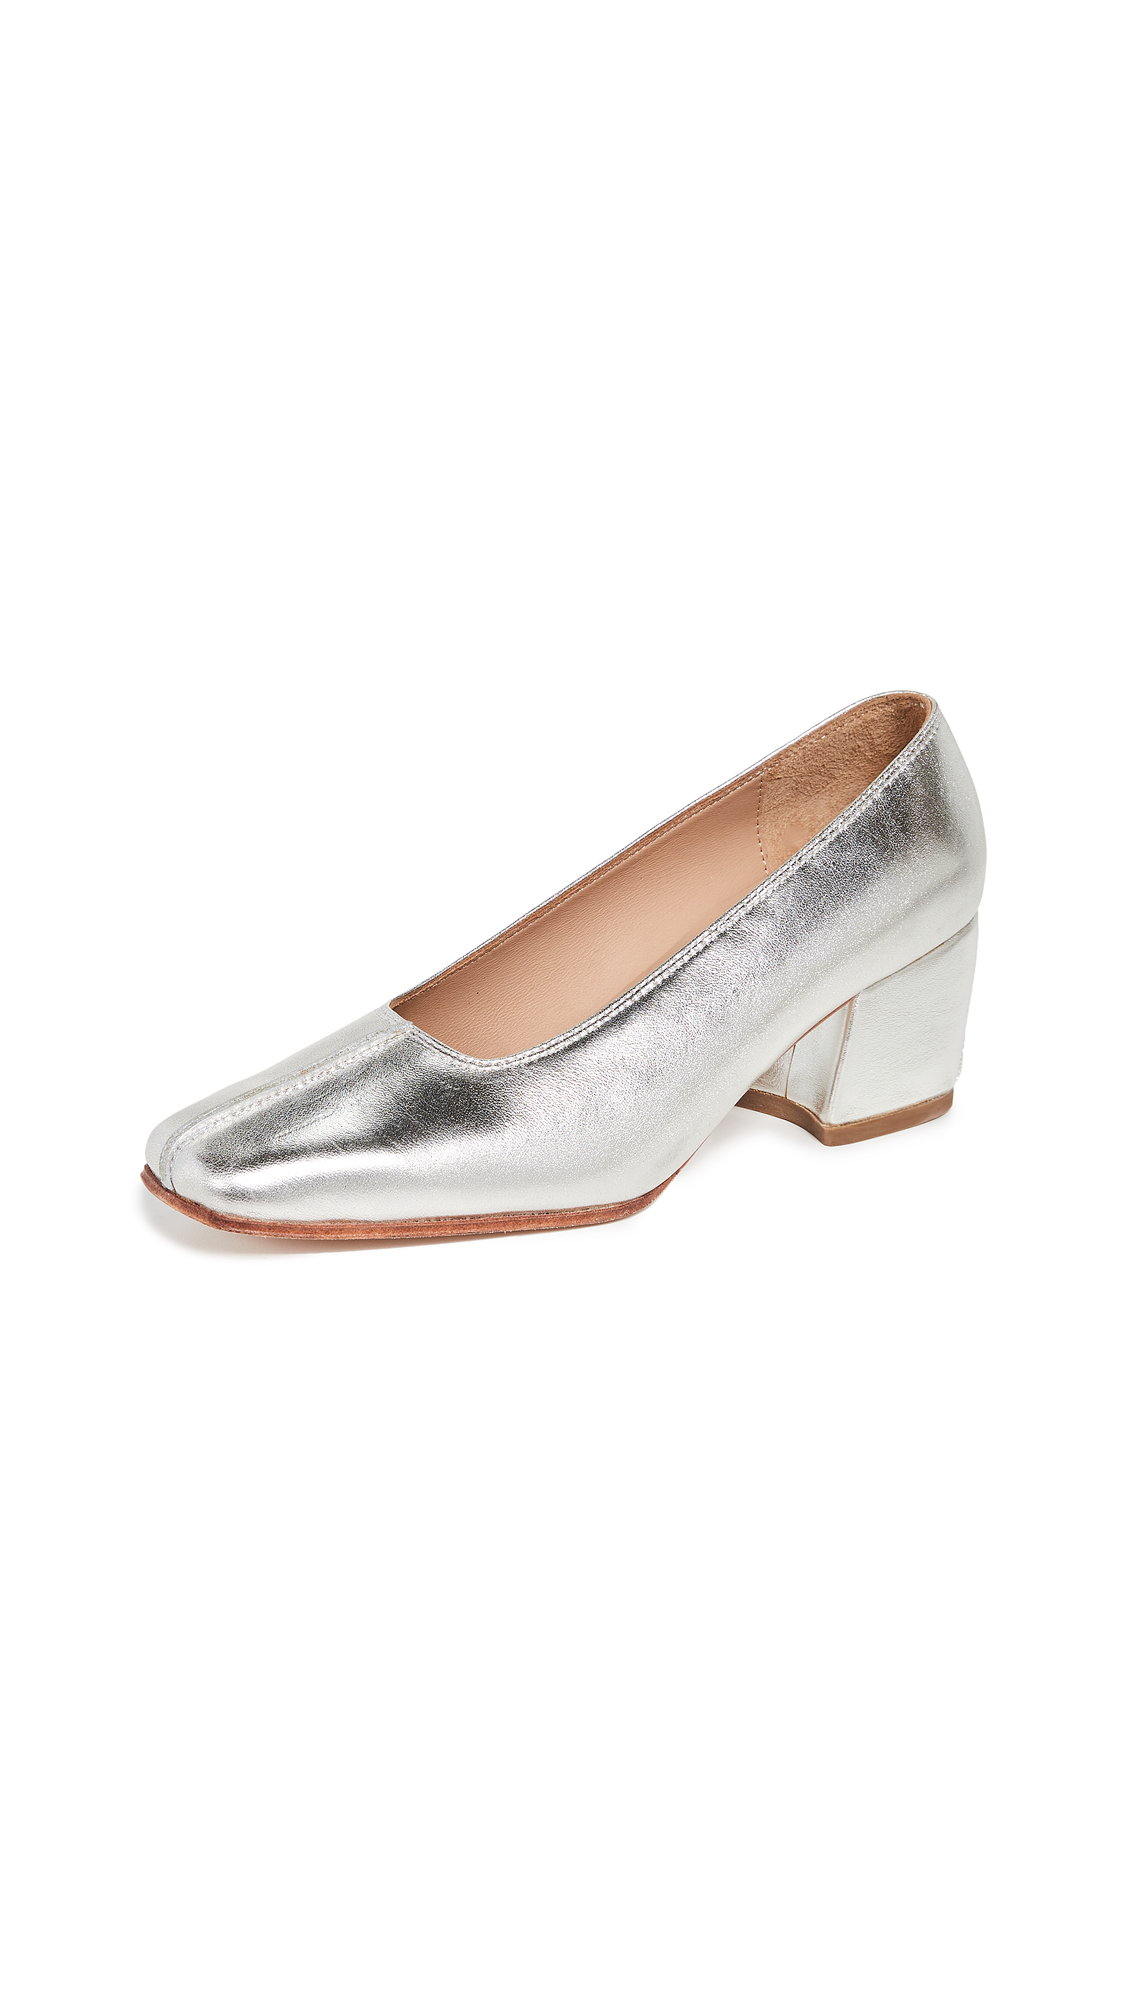 NO. 6 Ada Block Heel Pumps in Silver Foil